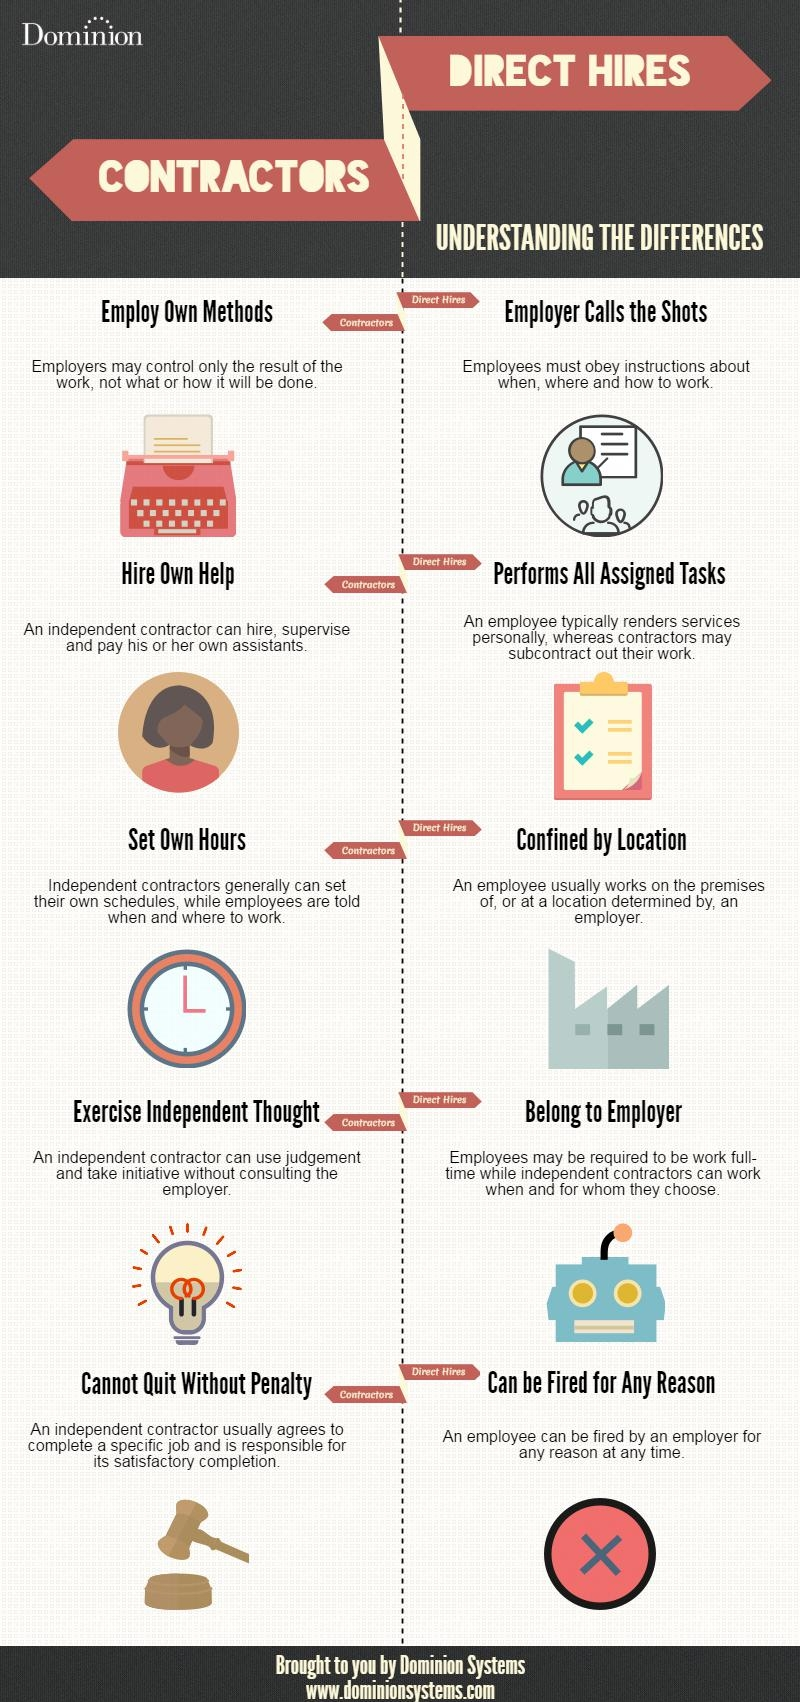 direct-hires-vs-contractors-understanding-differences-business-employers-workplace-infographic